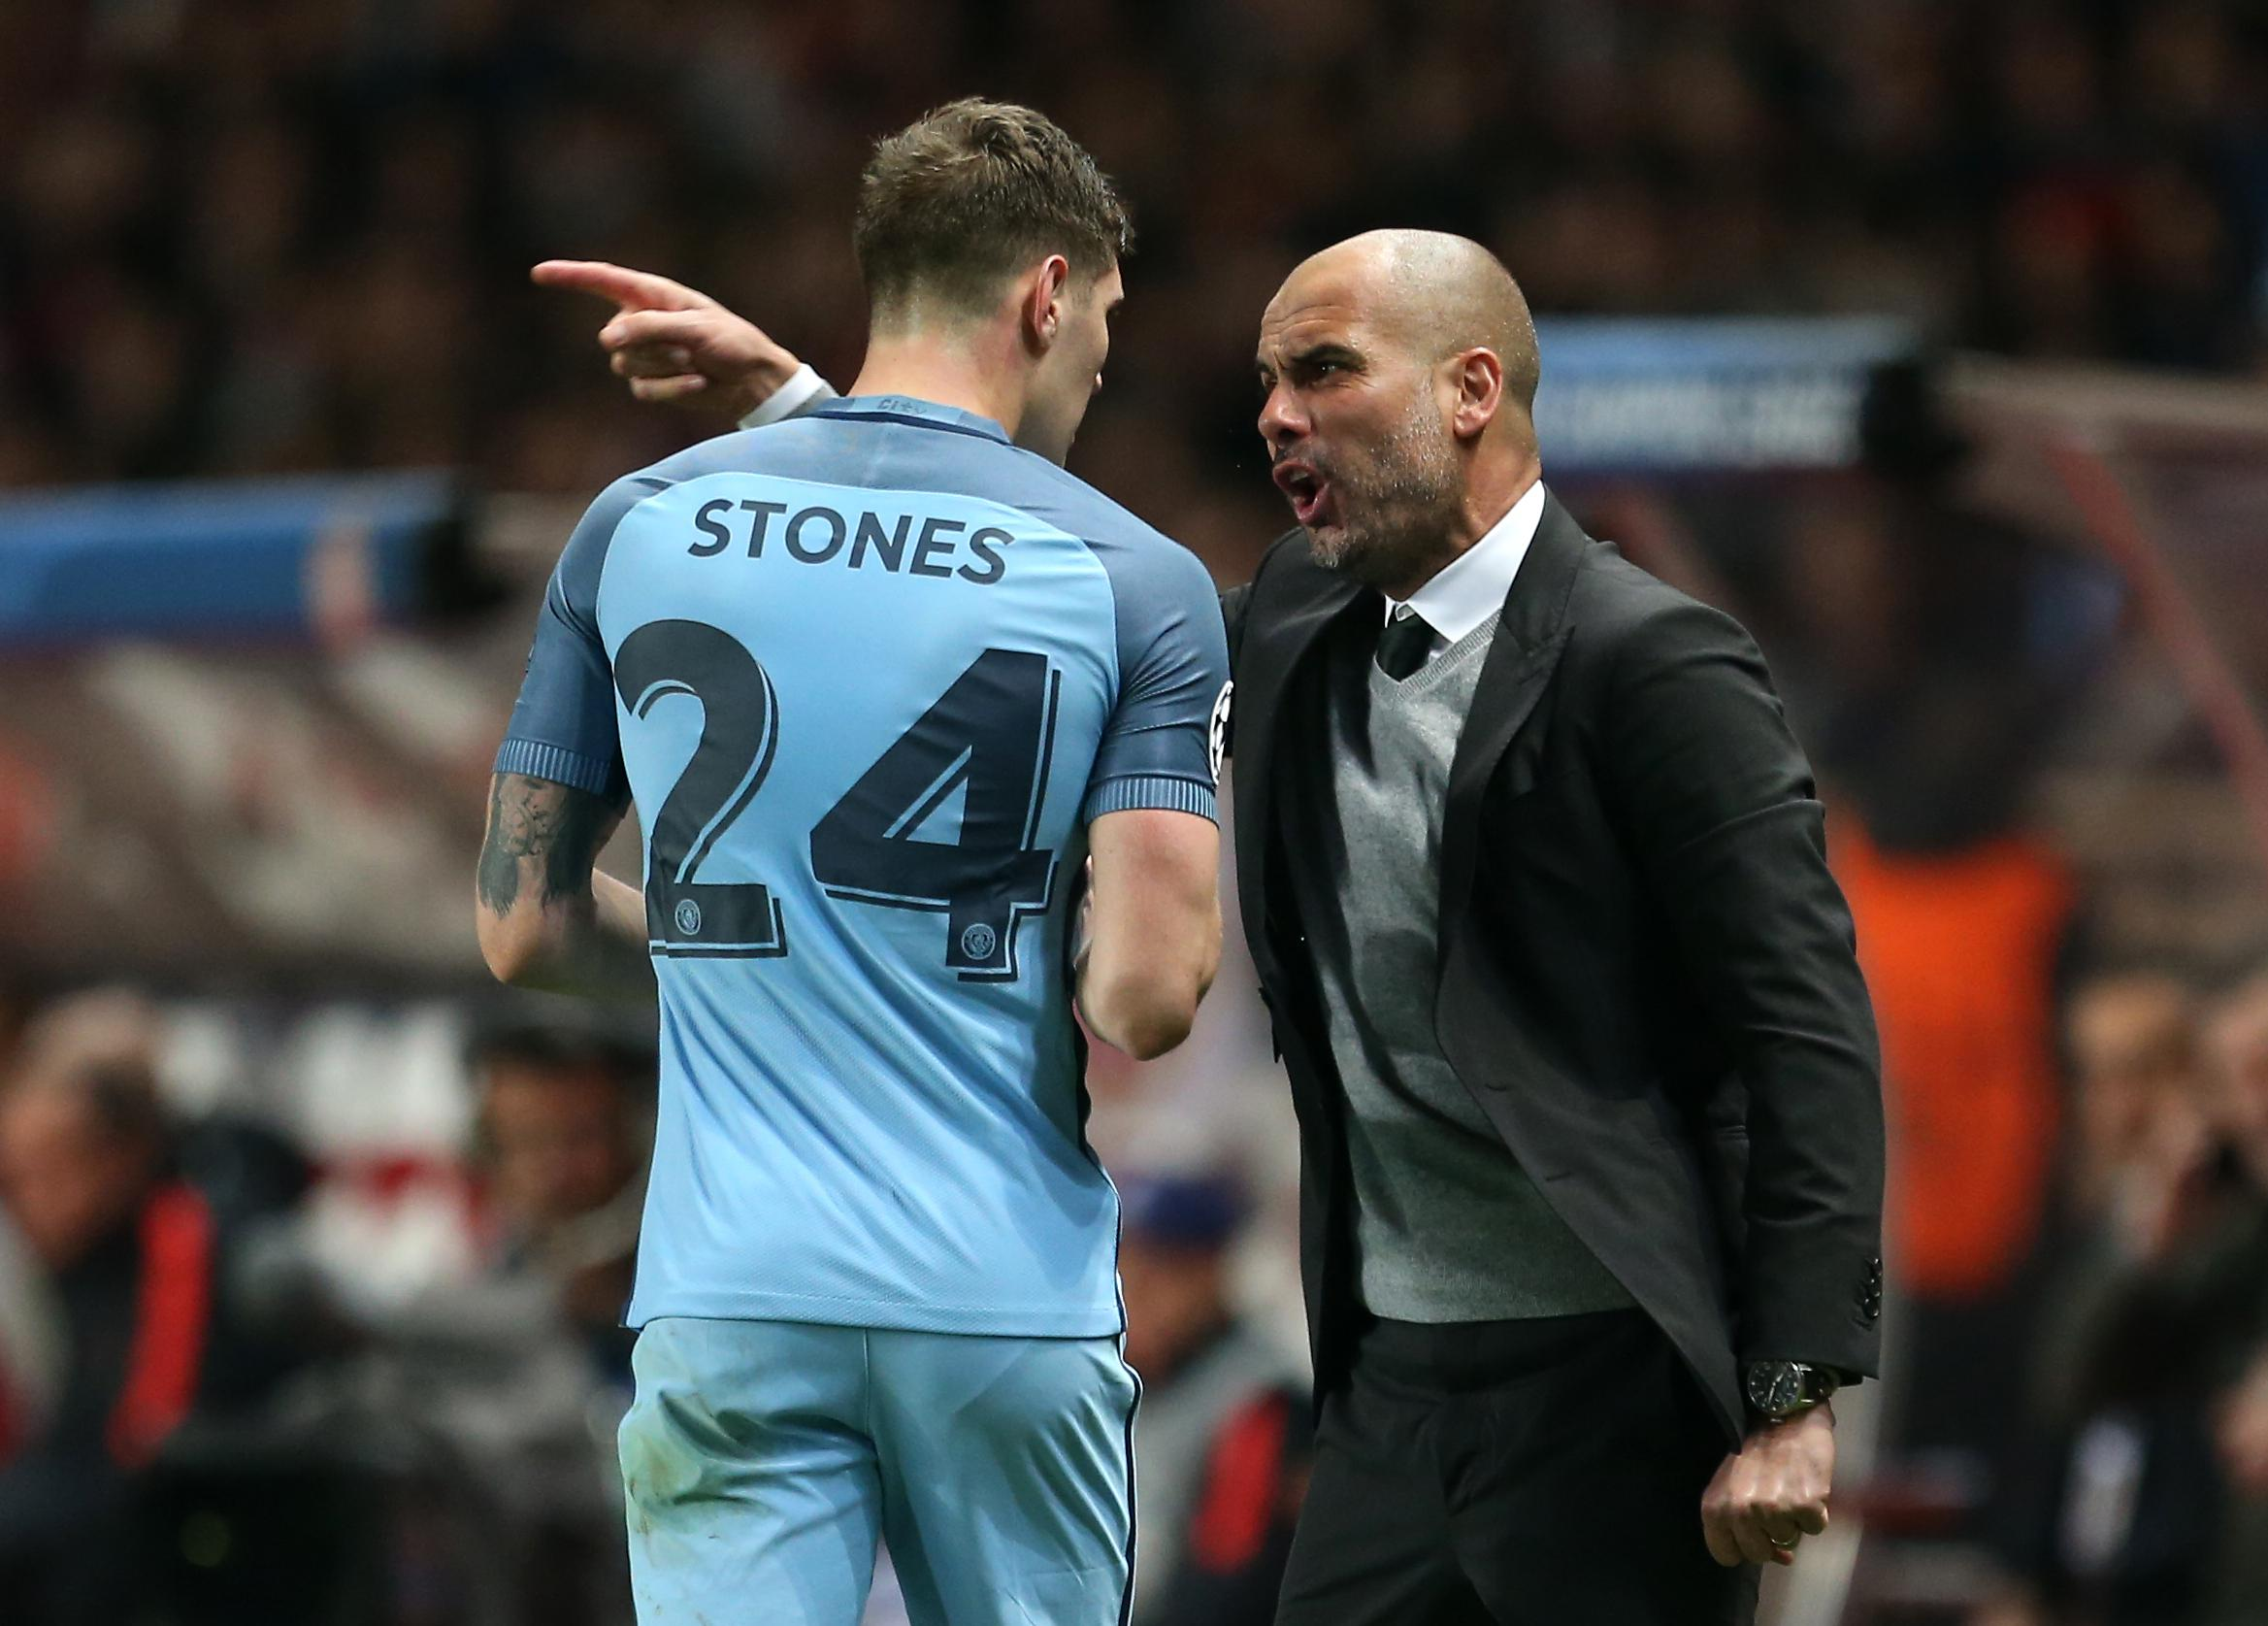 Man City defender John Stones typifies the sort of defender Guardiola loves